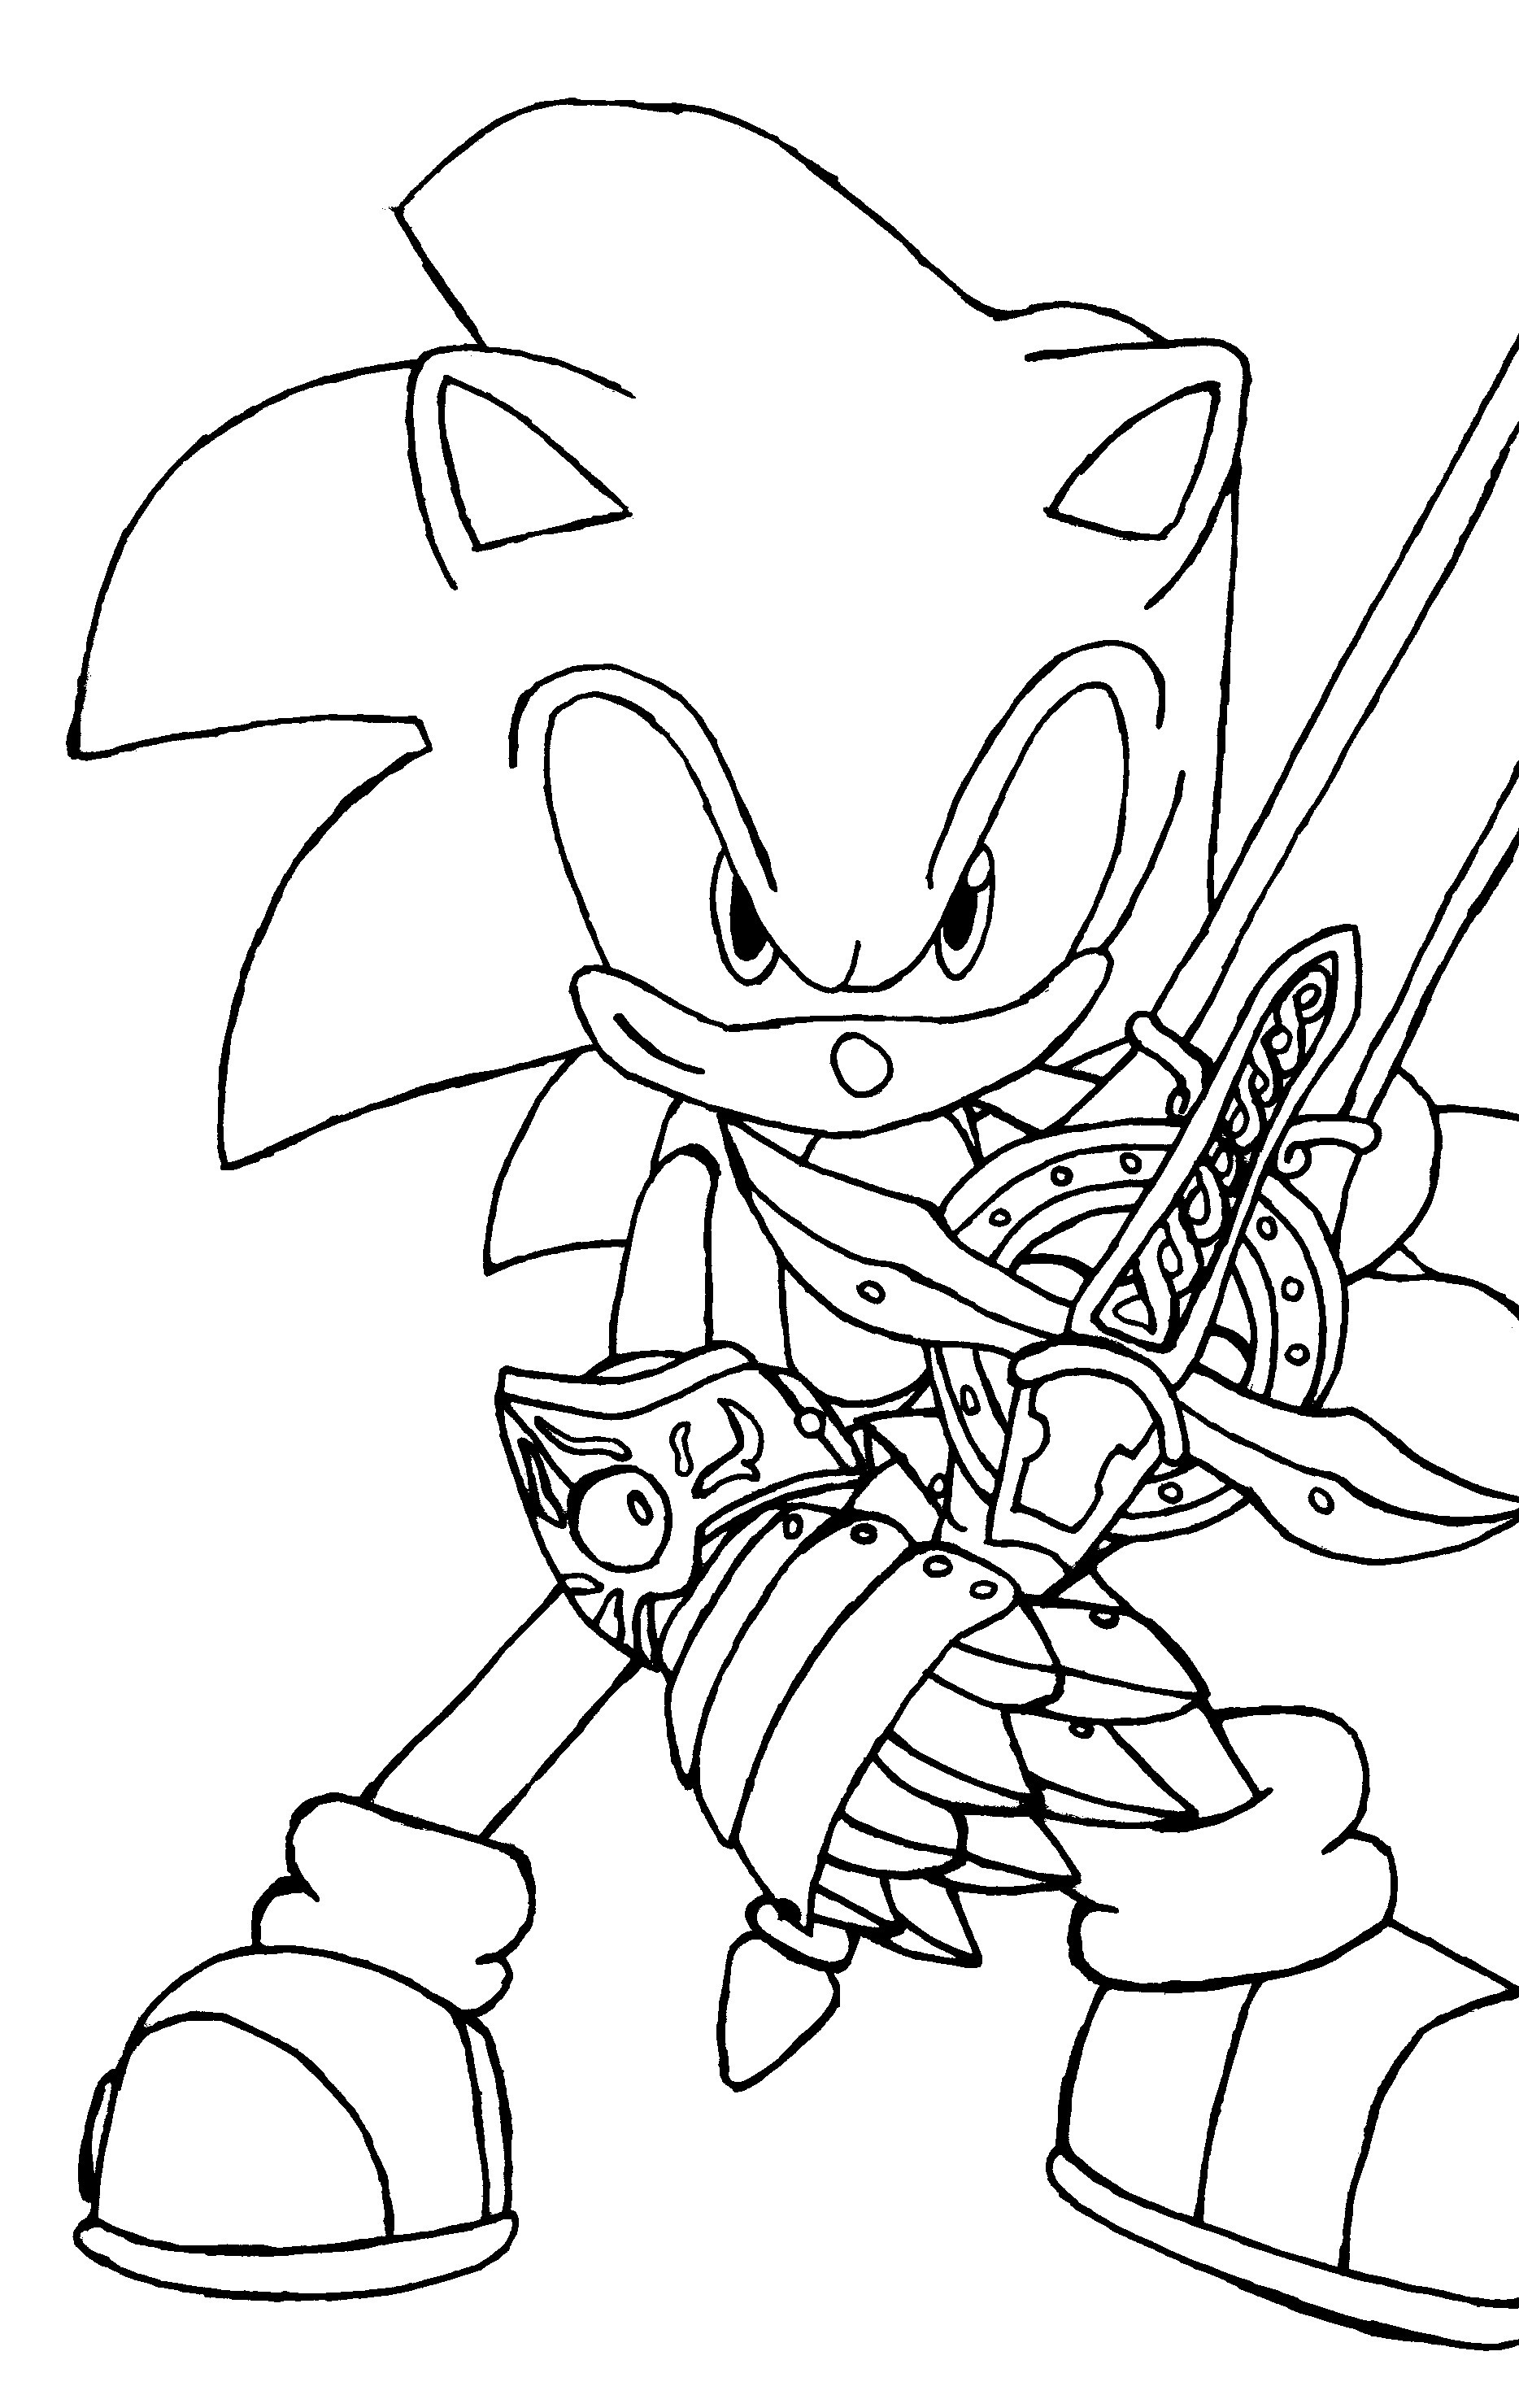 Coloring Book Pages Online Free  Coloring Pages For Kids line